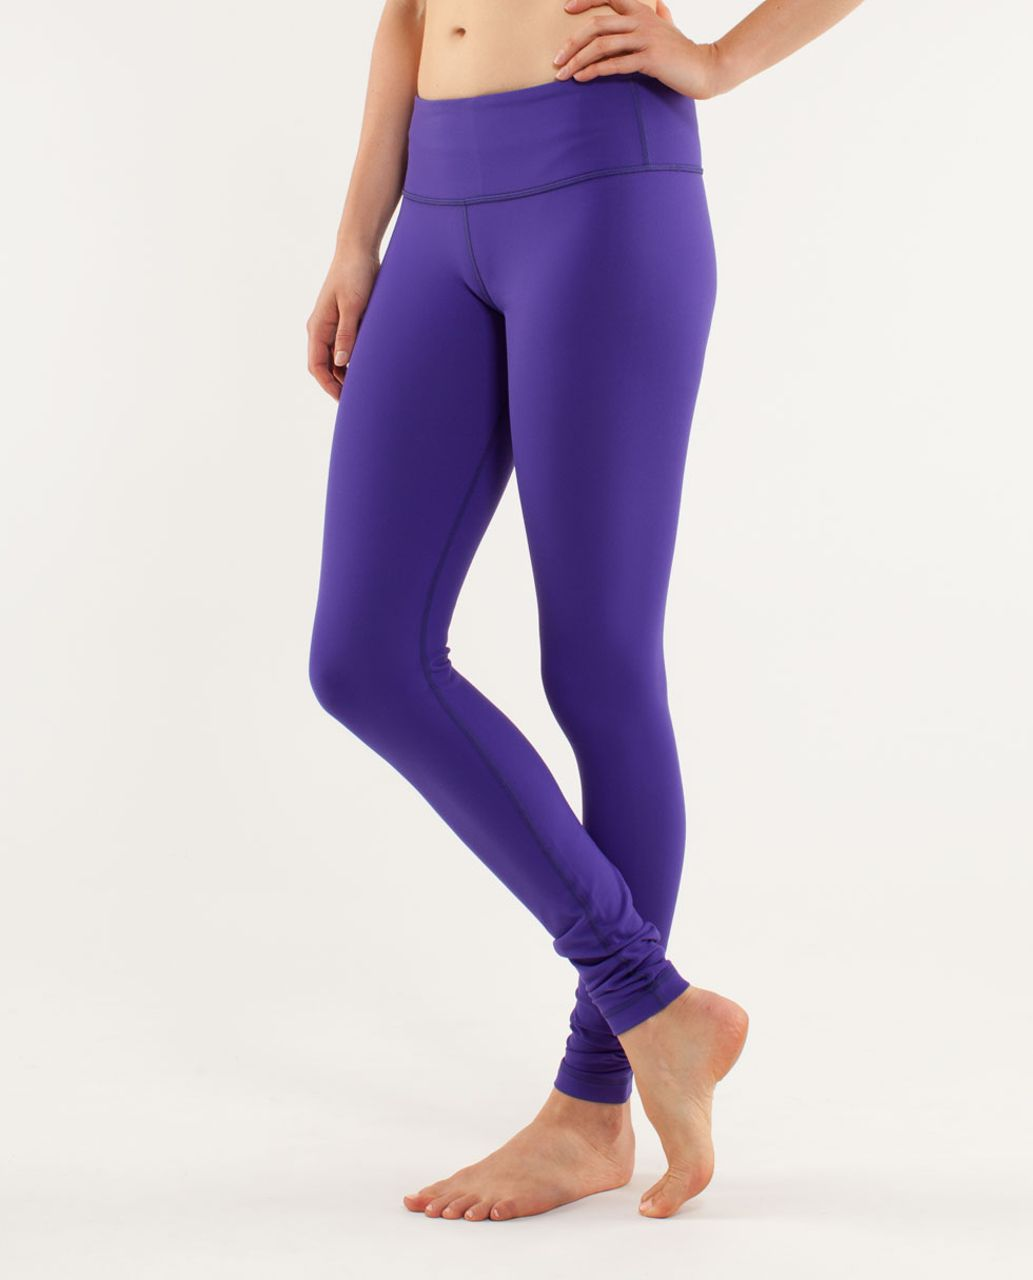 Lululemon Wunder Under Pant - Bruised Berry / Black